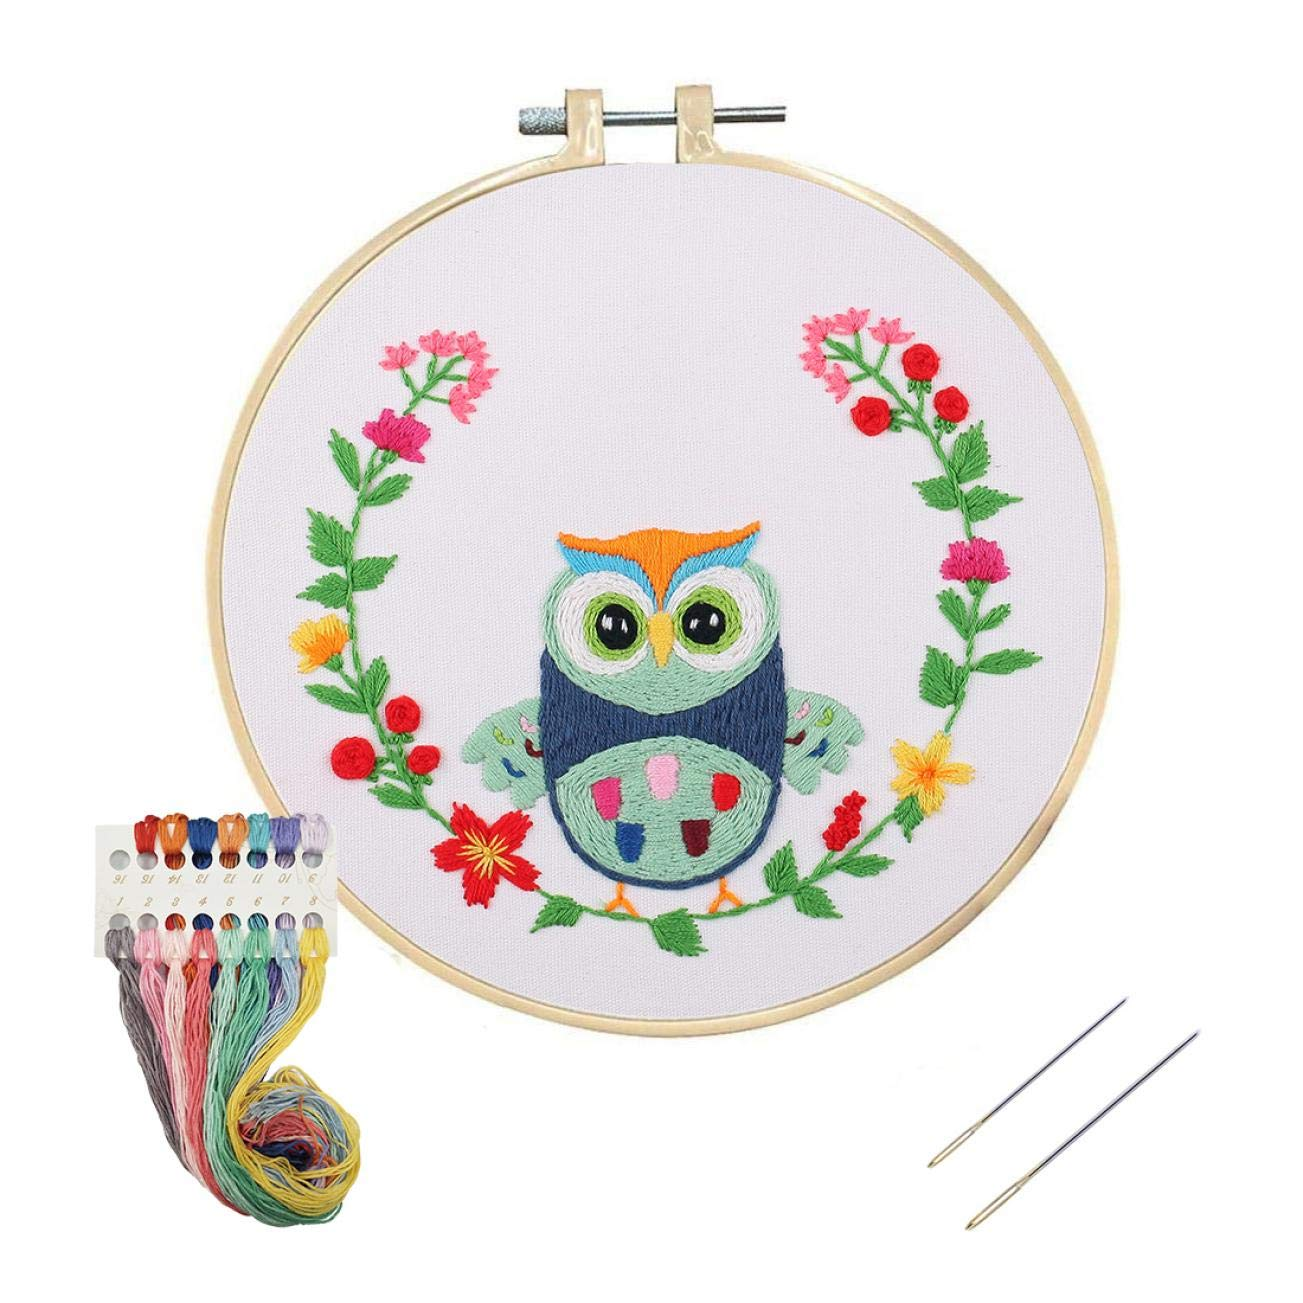 WODISON Beginner Stamped Cross Stitch Kit with Cute Animal Pattern Including Embroidery Hoops Floss Thread Fabric Needles